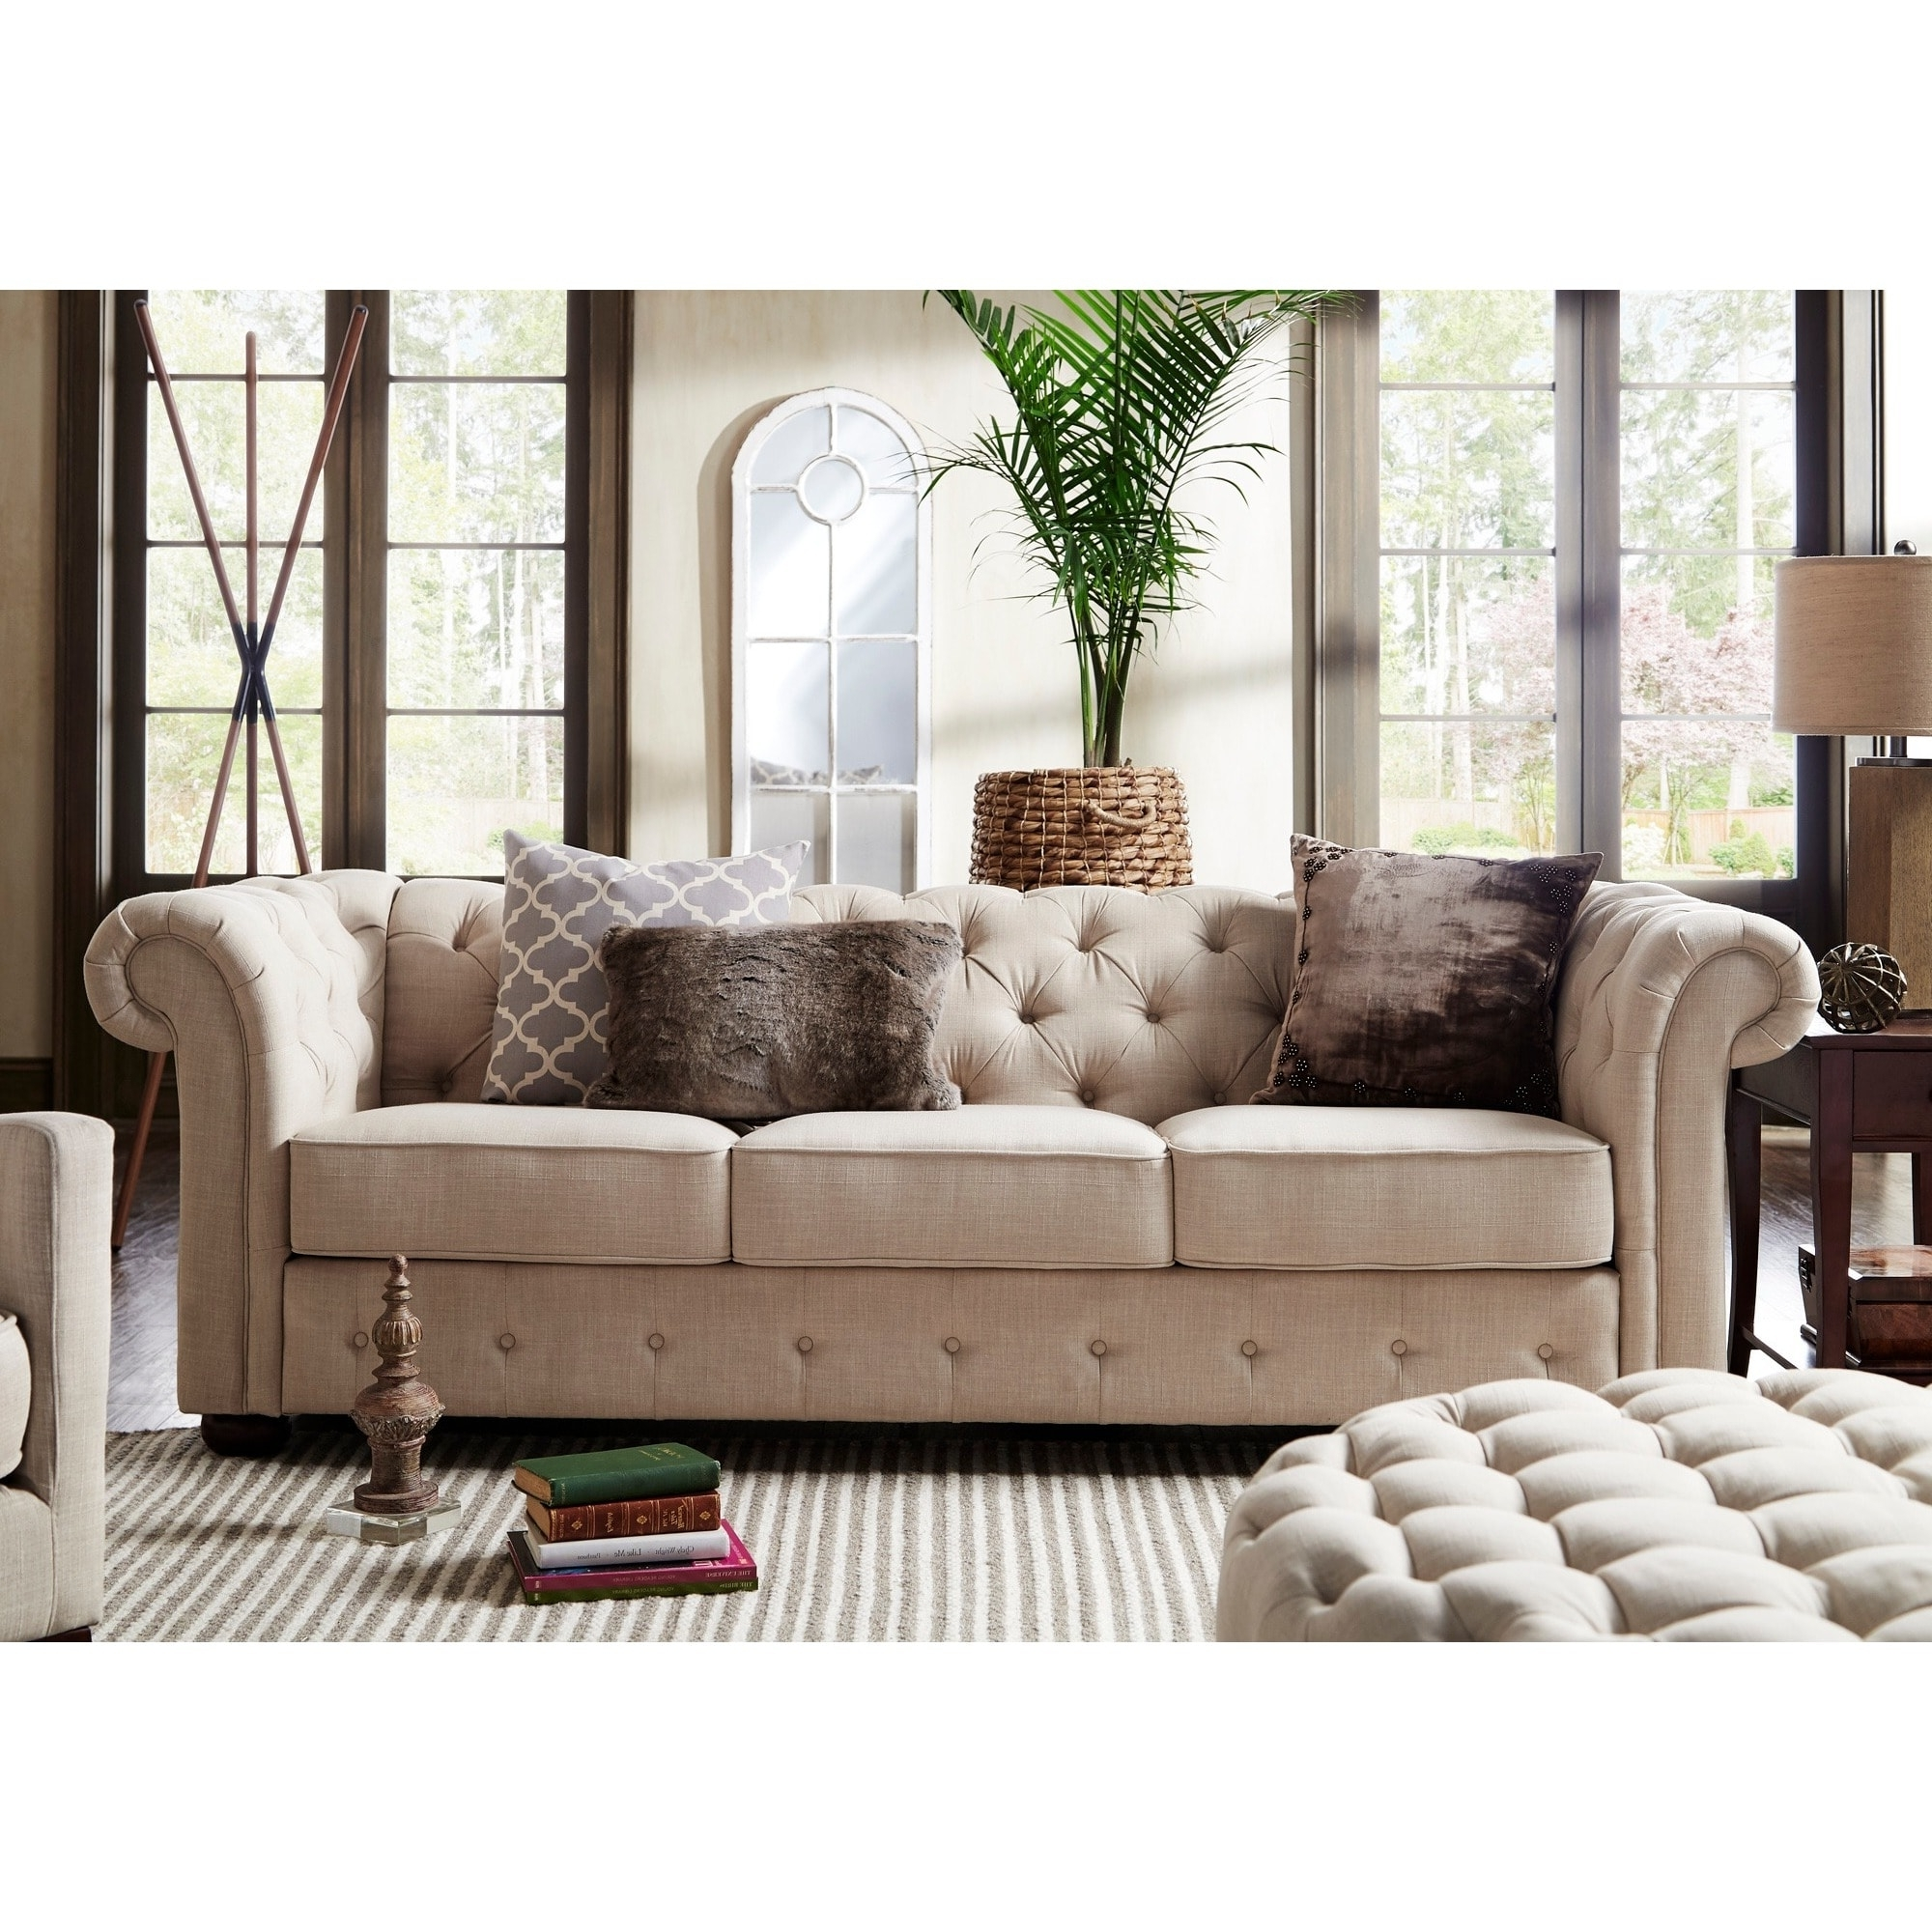 Fashionable Knightsbridge Beige Fabric Button Tufted Chesterfield Sofa And Inside Chesterfield Sofas And Chairs (View 10 of 20)